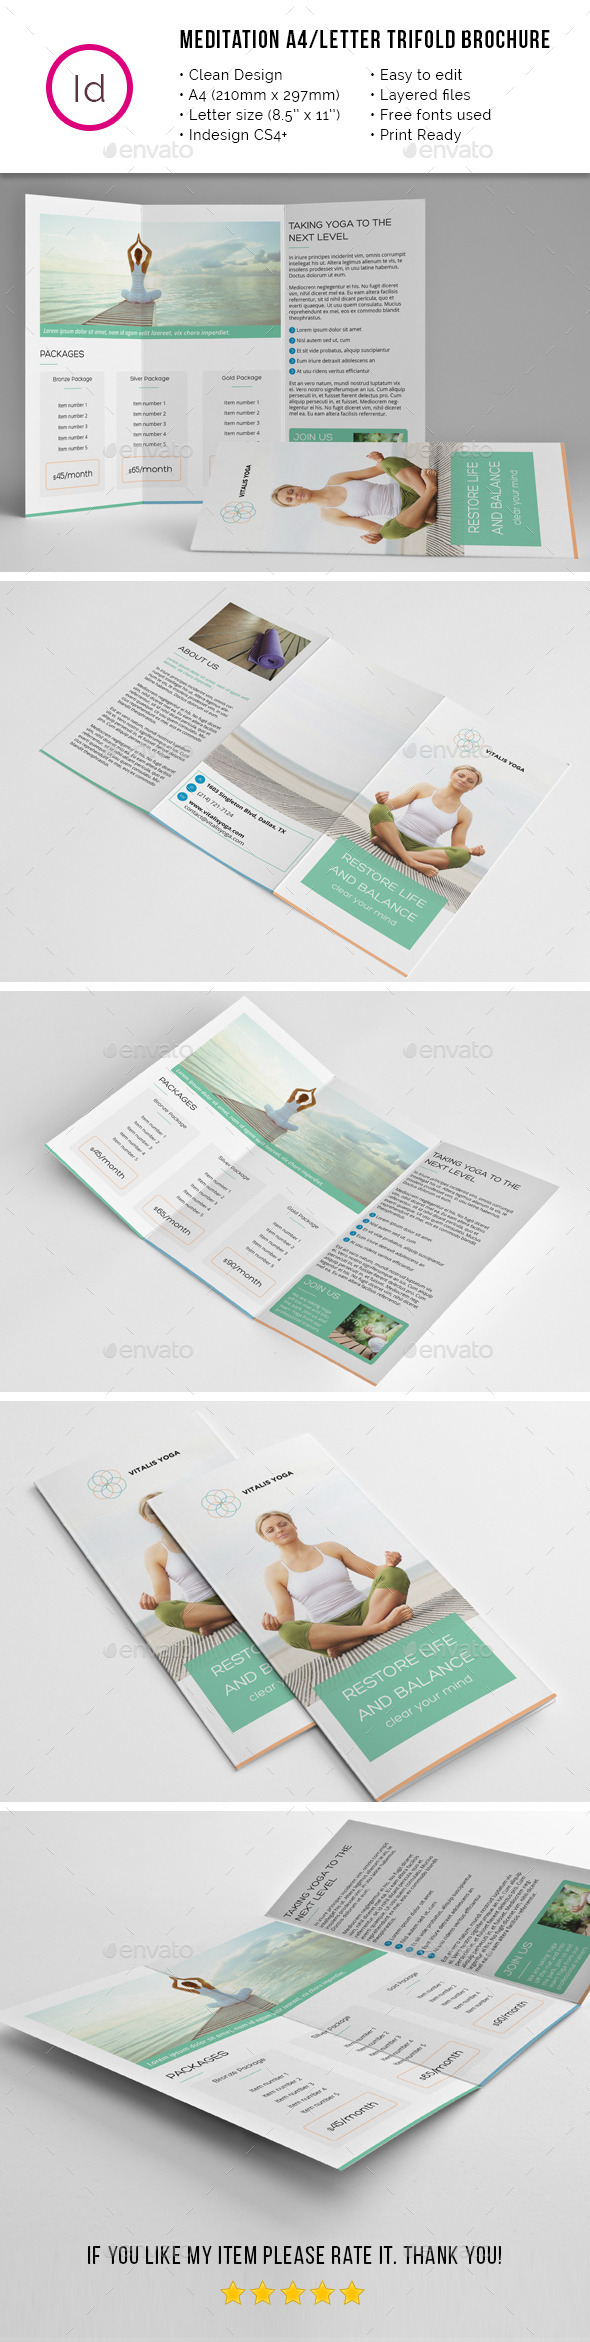 Yoga meditation a4 letter trifold brochure by mediabq for Yoga brochure templates